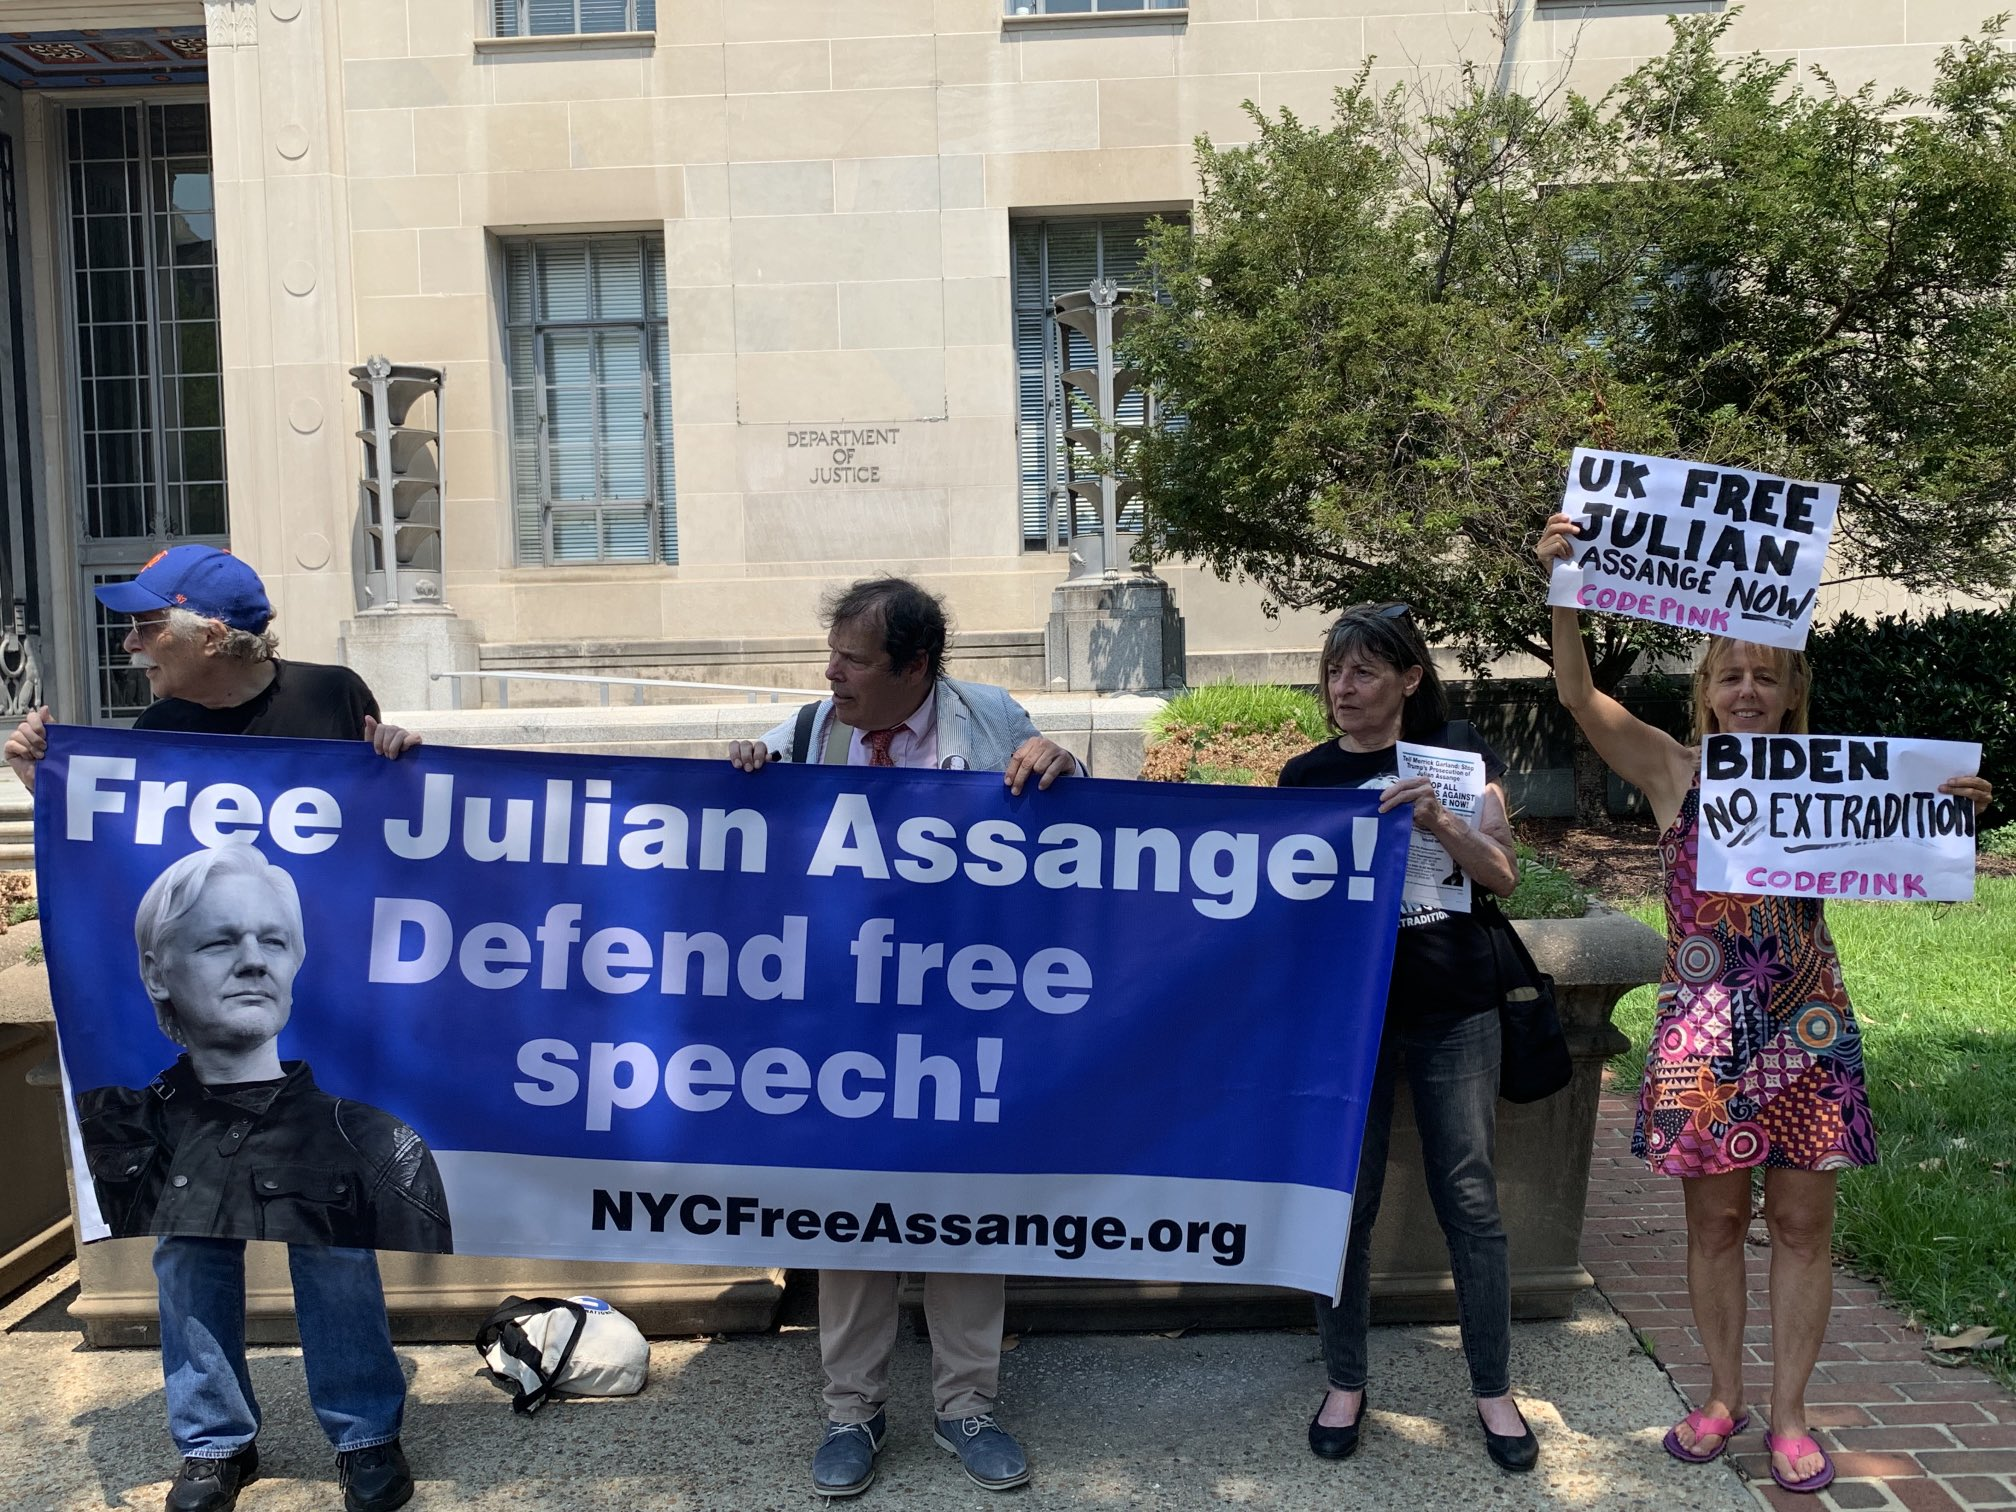 """Medea Benjamin on Twitter: """"We are in front of the justice department inIn  wahsington dc calling on them to drop the charges against Julian Assange  #freeassange… https://t.co/nYMwV7oaYM"""""""